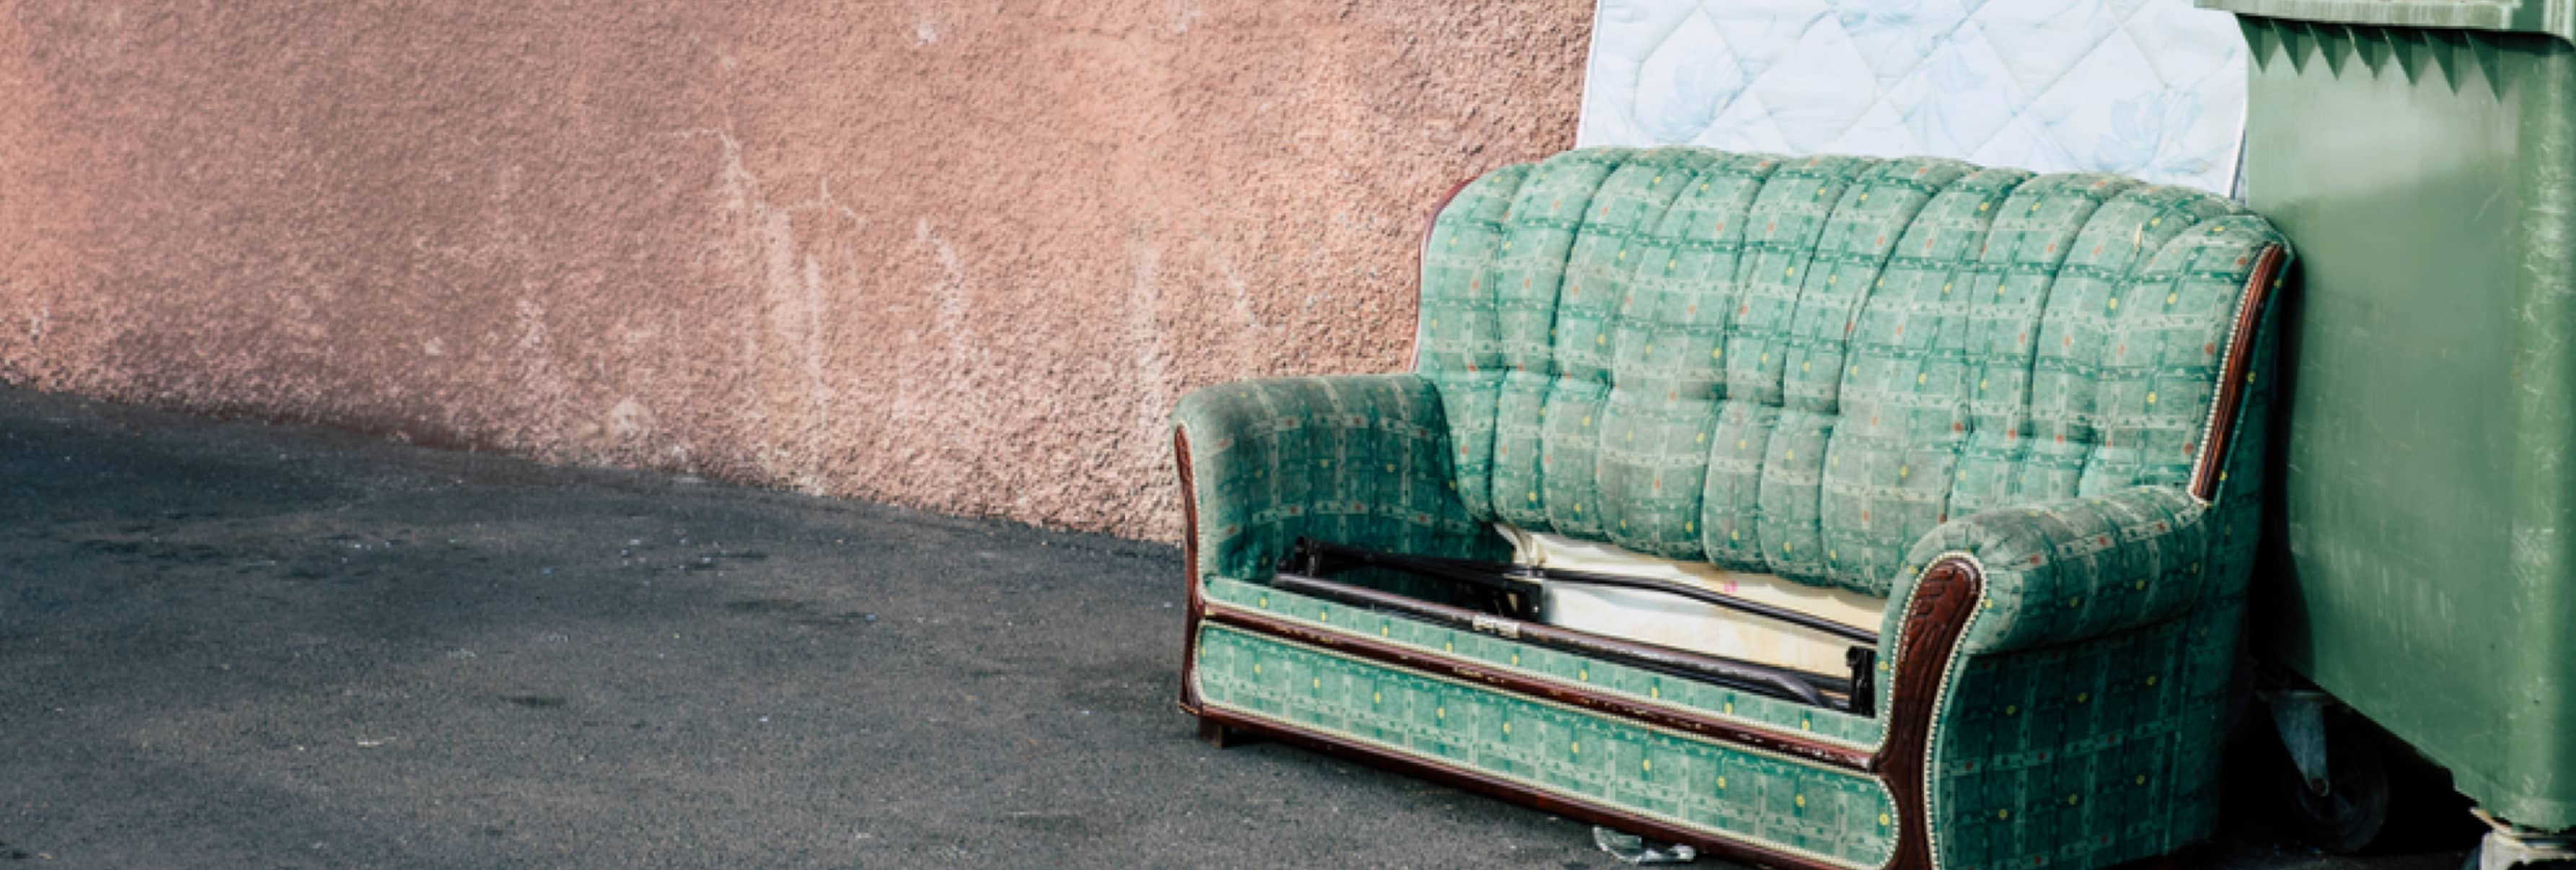 Fly-Tipping Fine: What You Need to Know